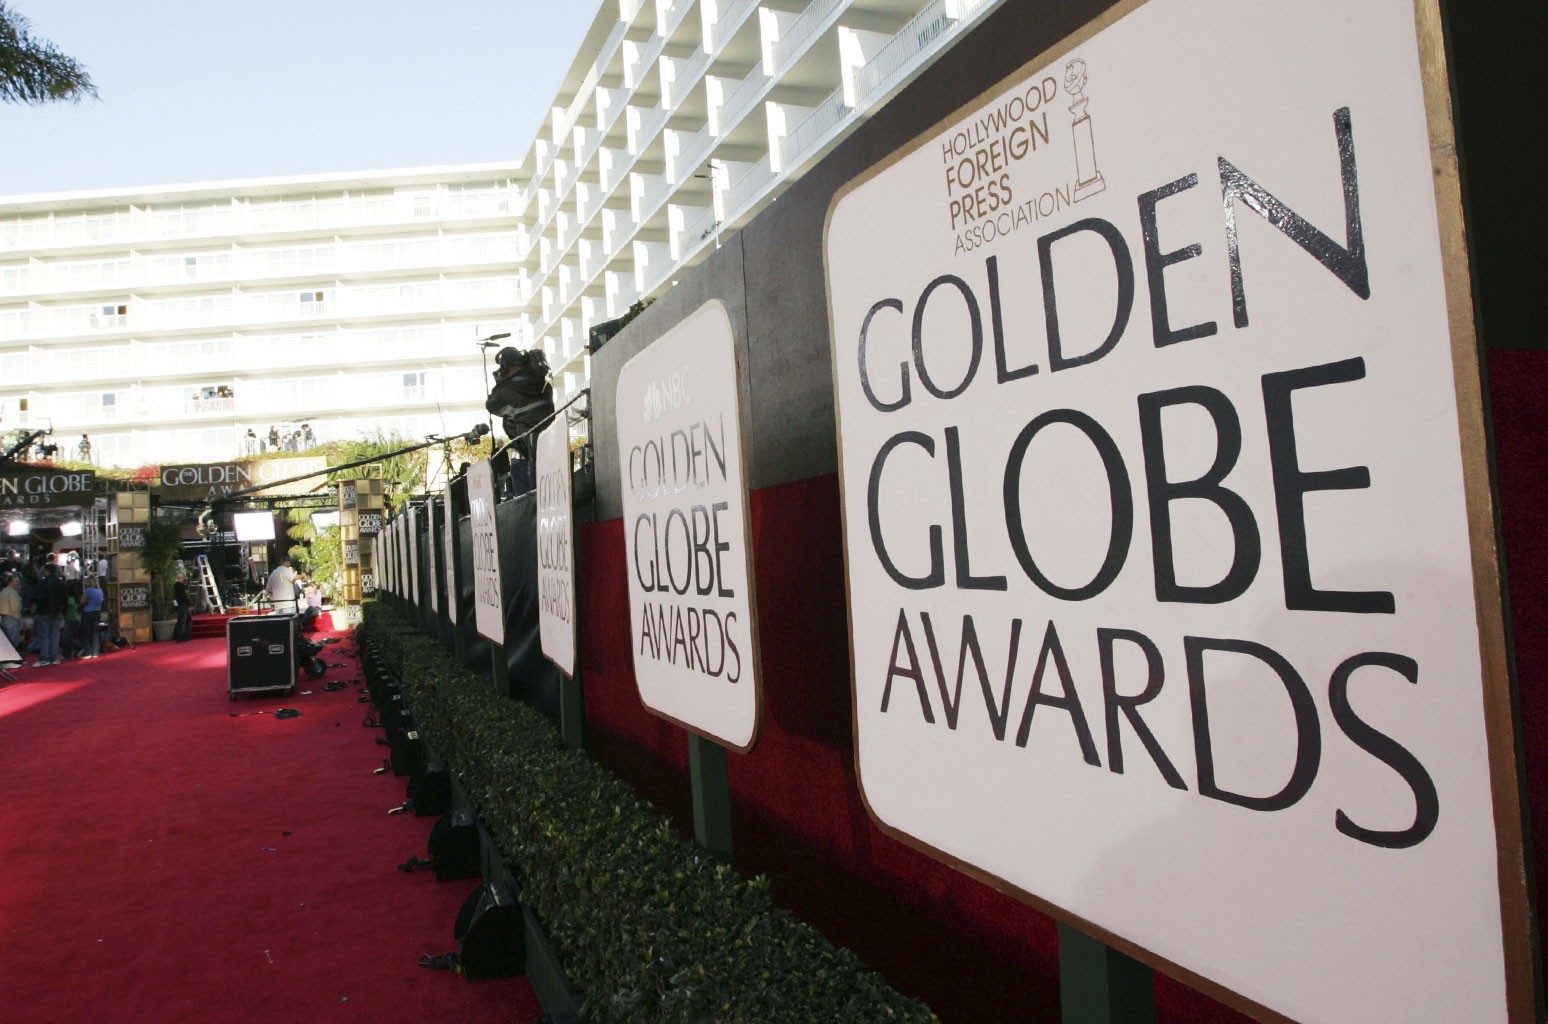 Preparations for the 63rd Annual Golden Globes are underway at the Beverly Hilton Hotel.